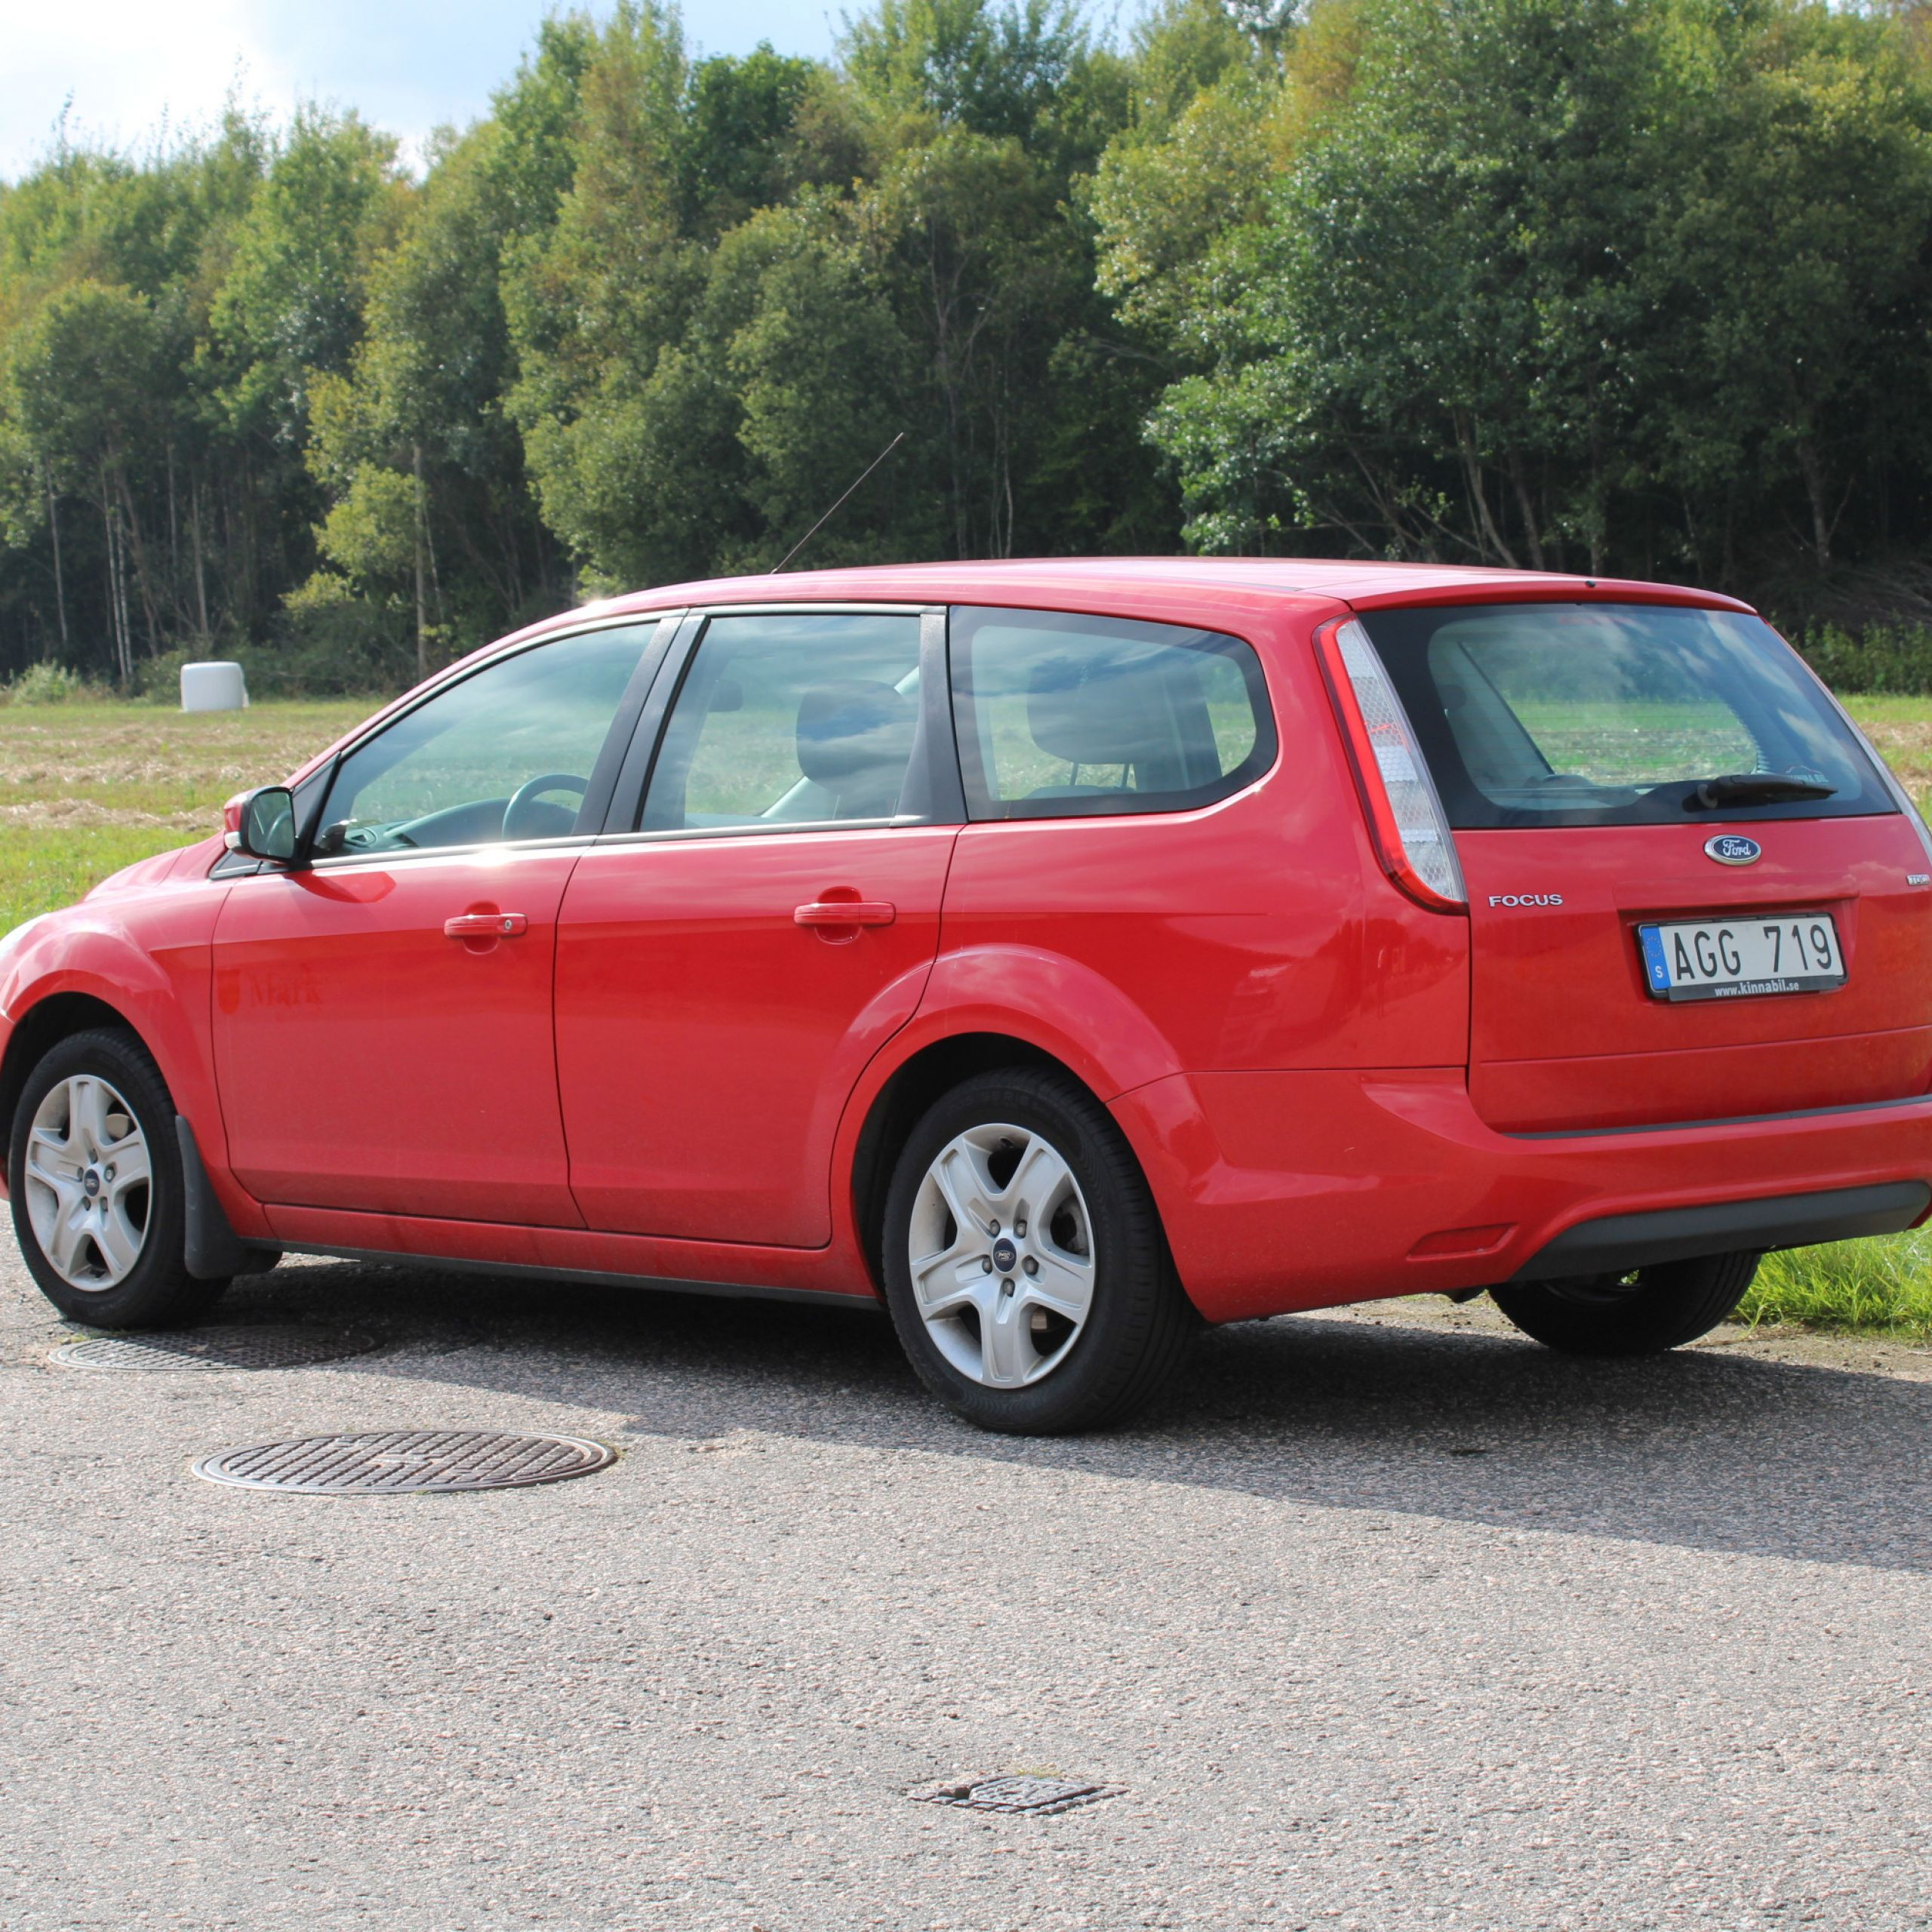 Ford Focus 2010 Beautiful ford Focus 1 6 Tdci 10 [agg719] Ps Auction We Value the